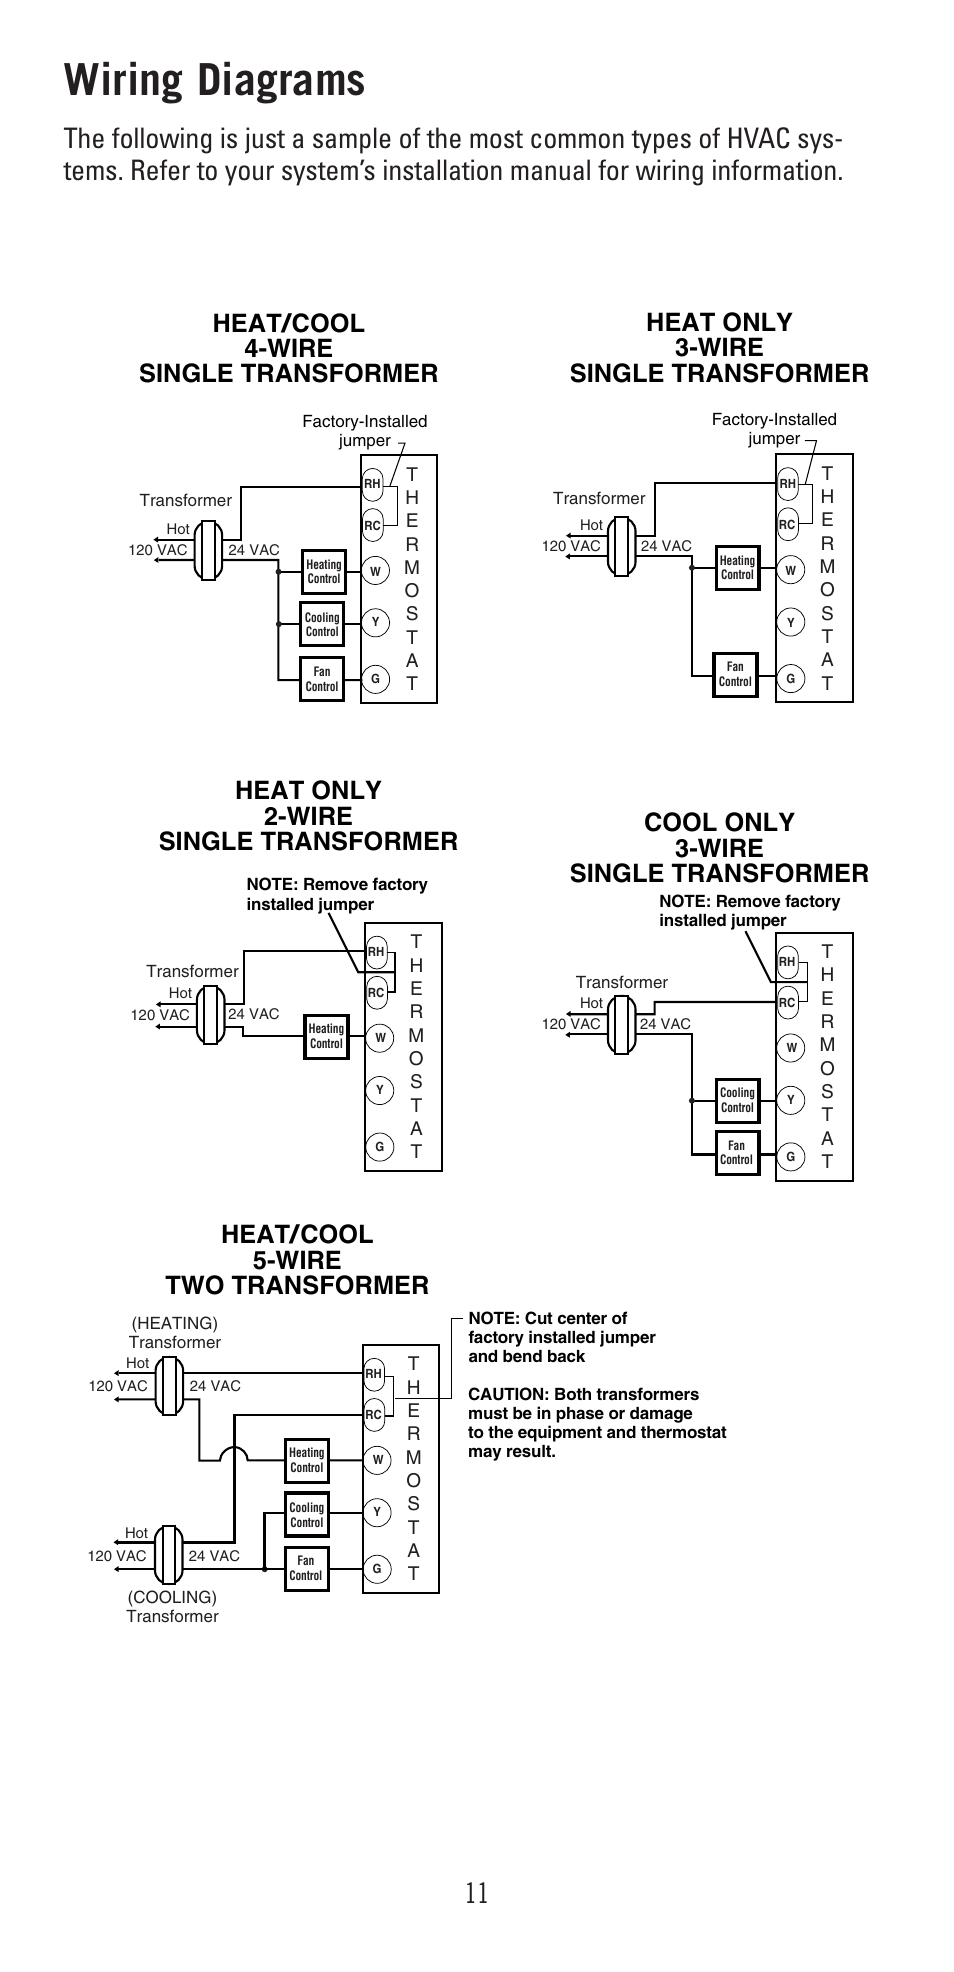 Wiring diagrams | Robertshaw 9600 User Manual | Page 11 / 12Manuals Directory